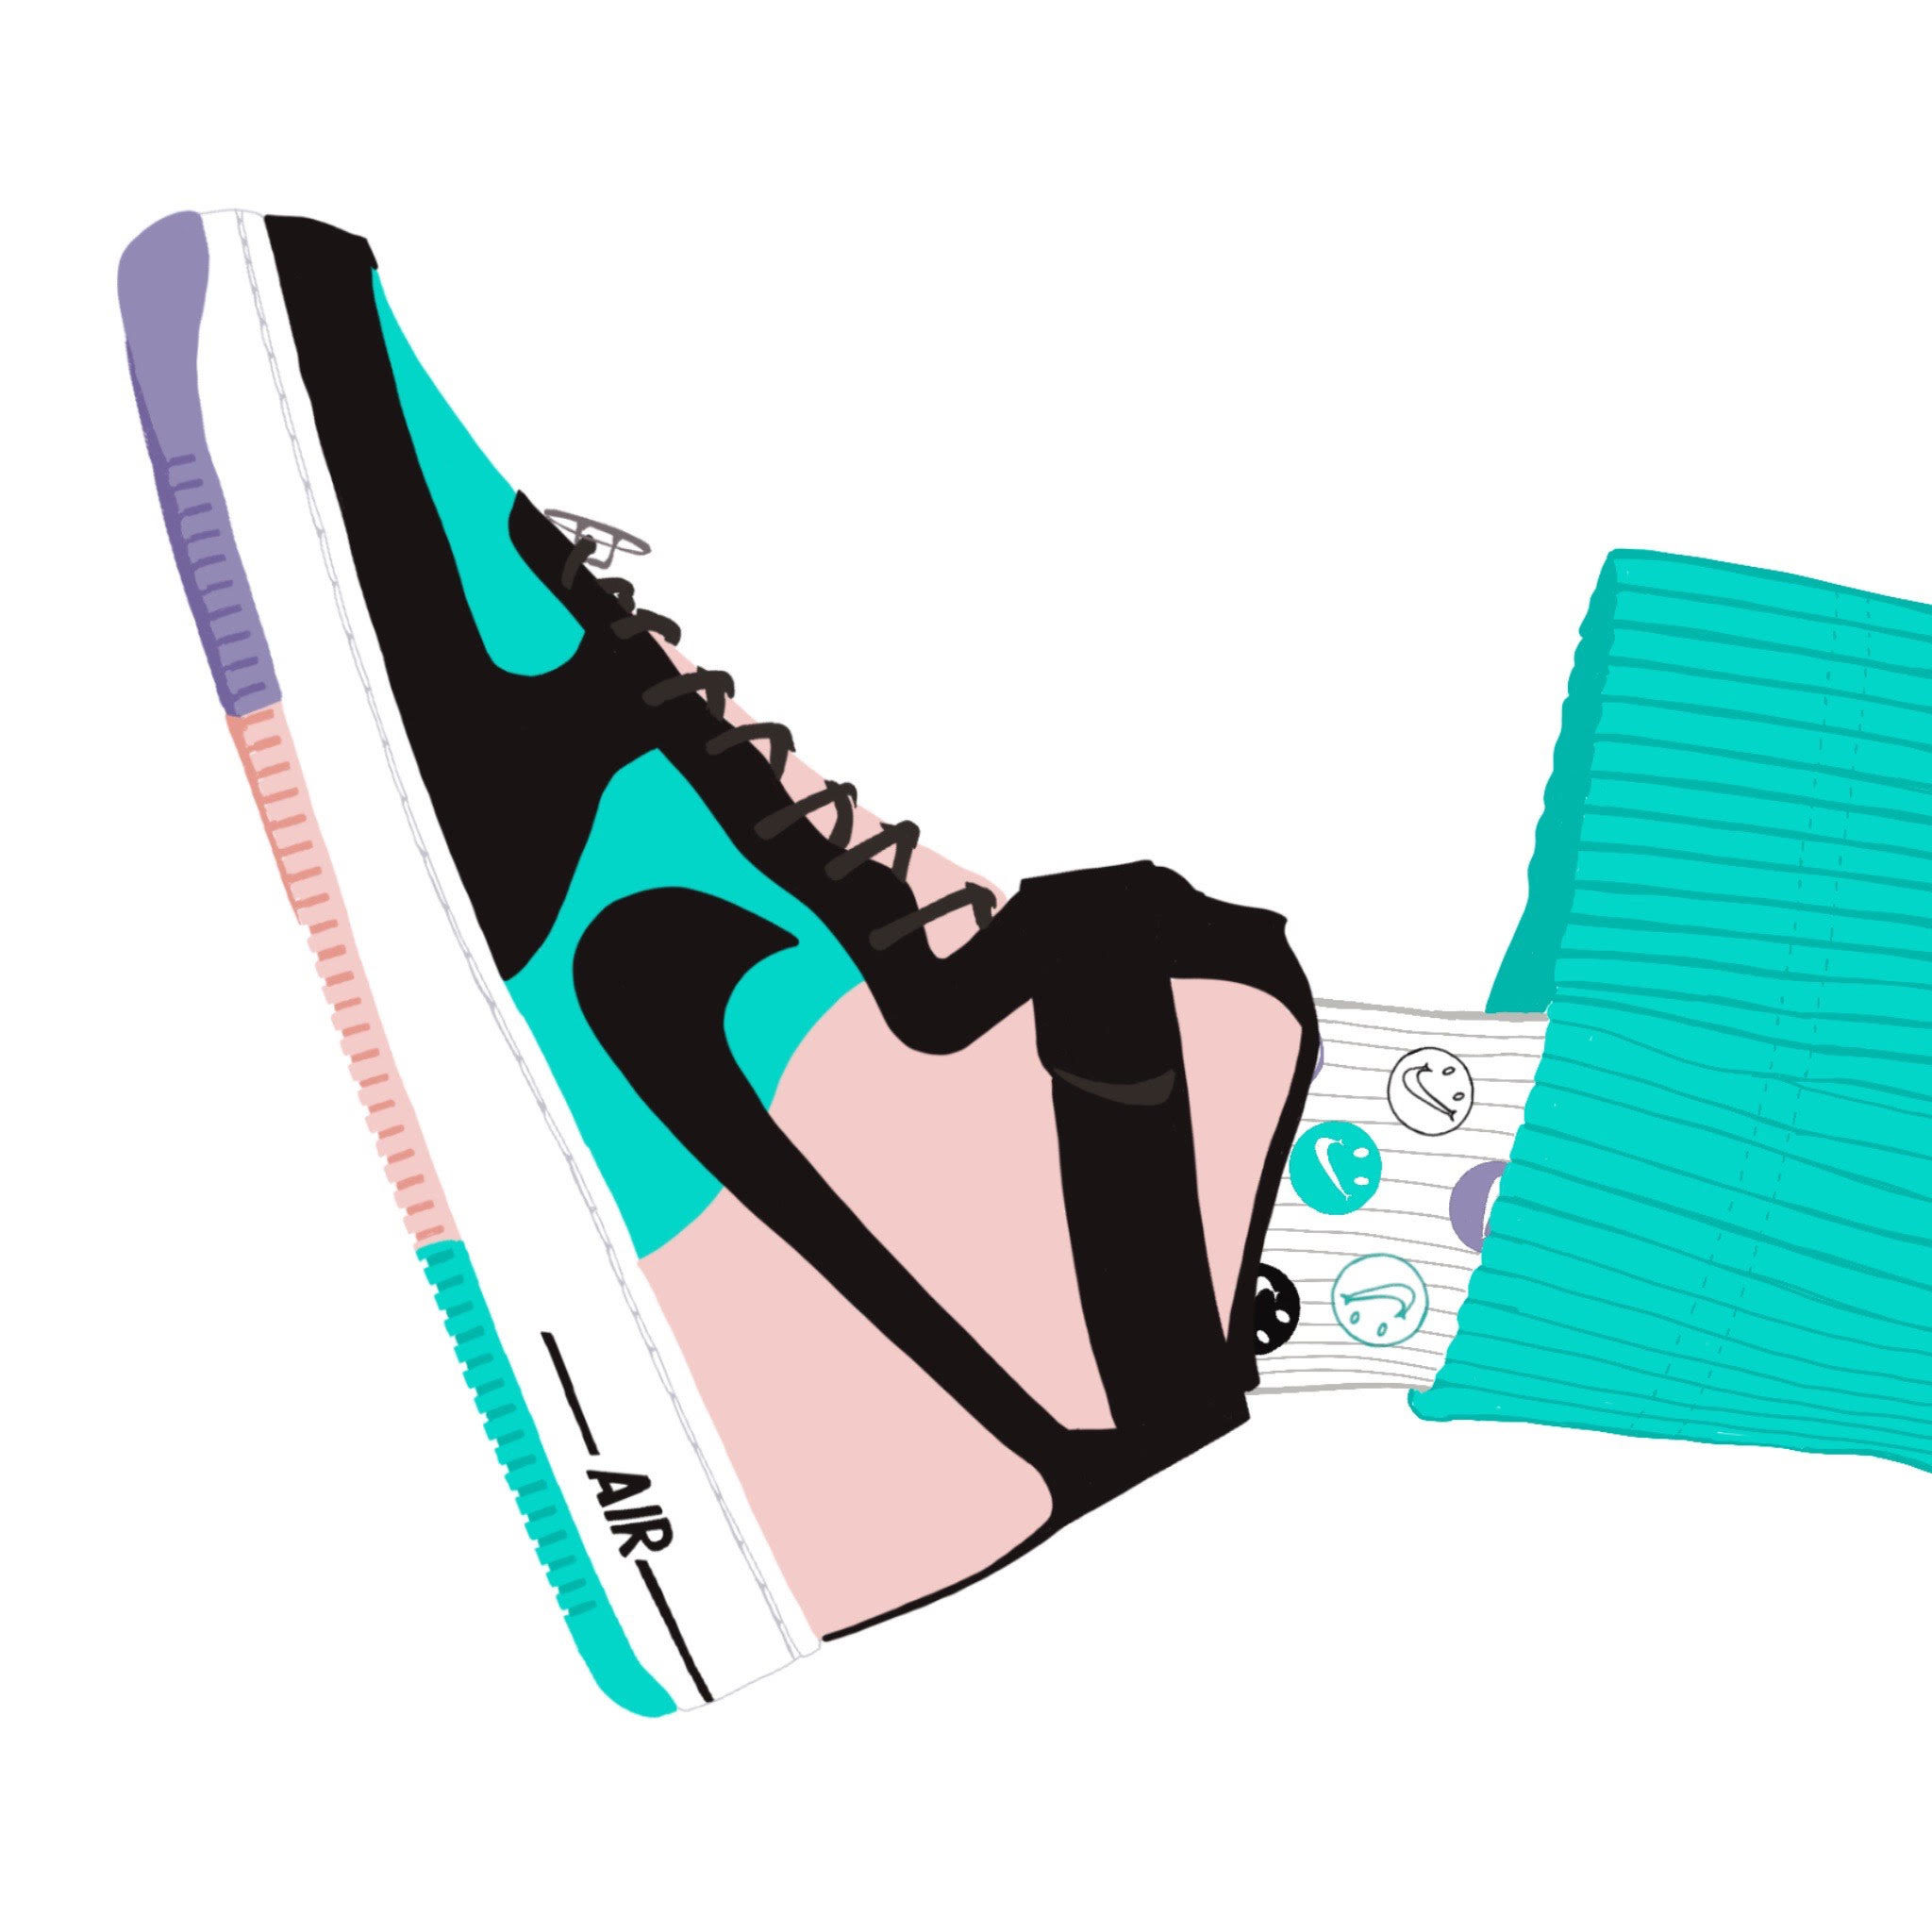 Nike – Sneaker Addicted